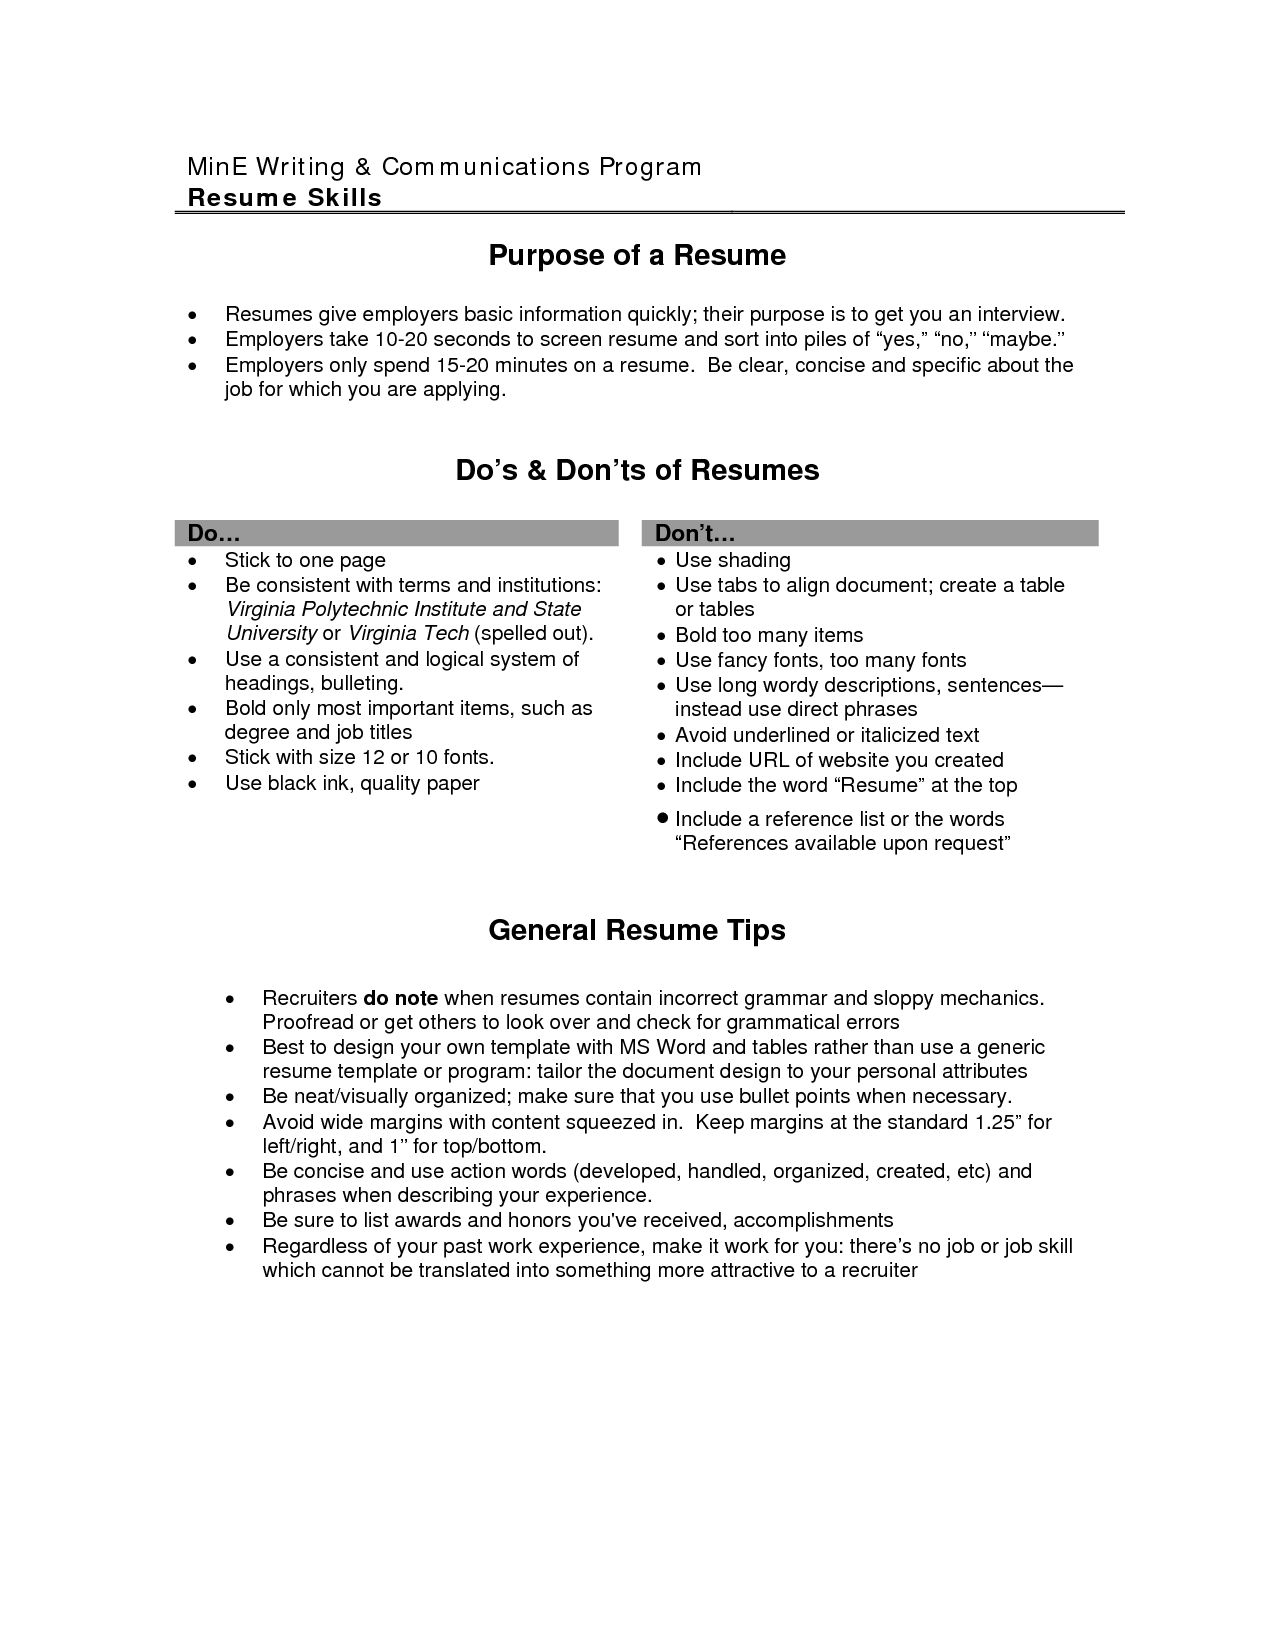 General Objectives For Resumes Top Resume Skills Entry Level Template The Create Your Building